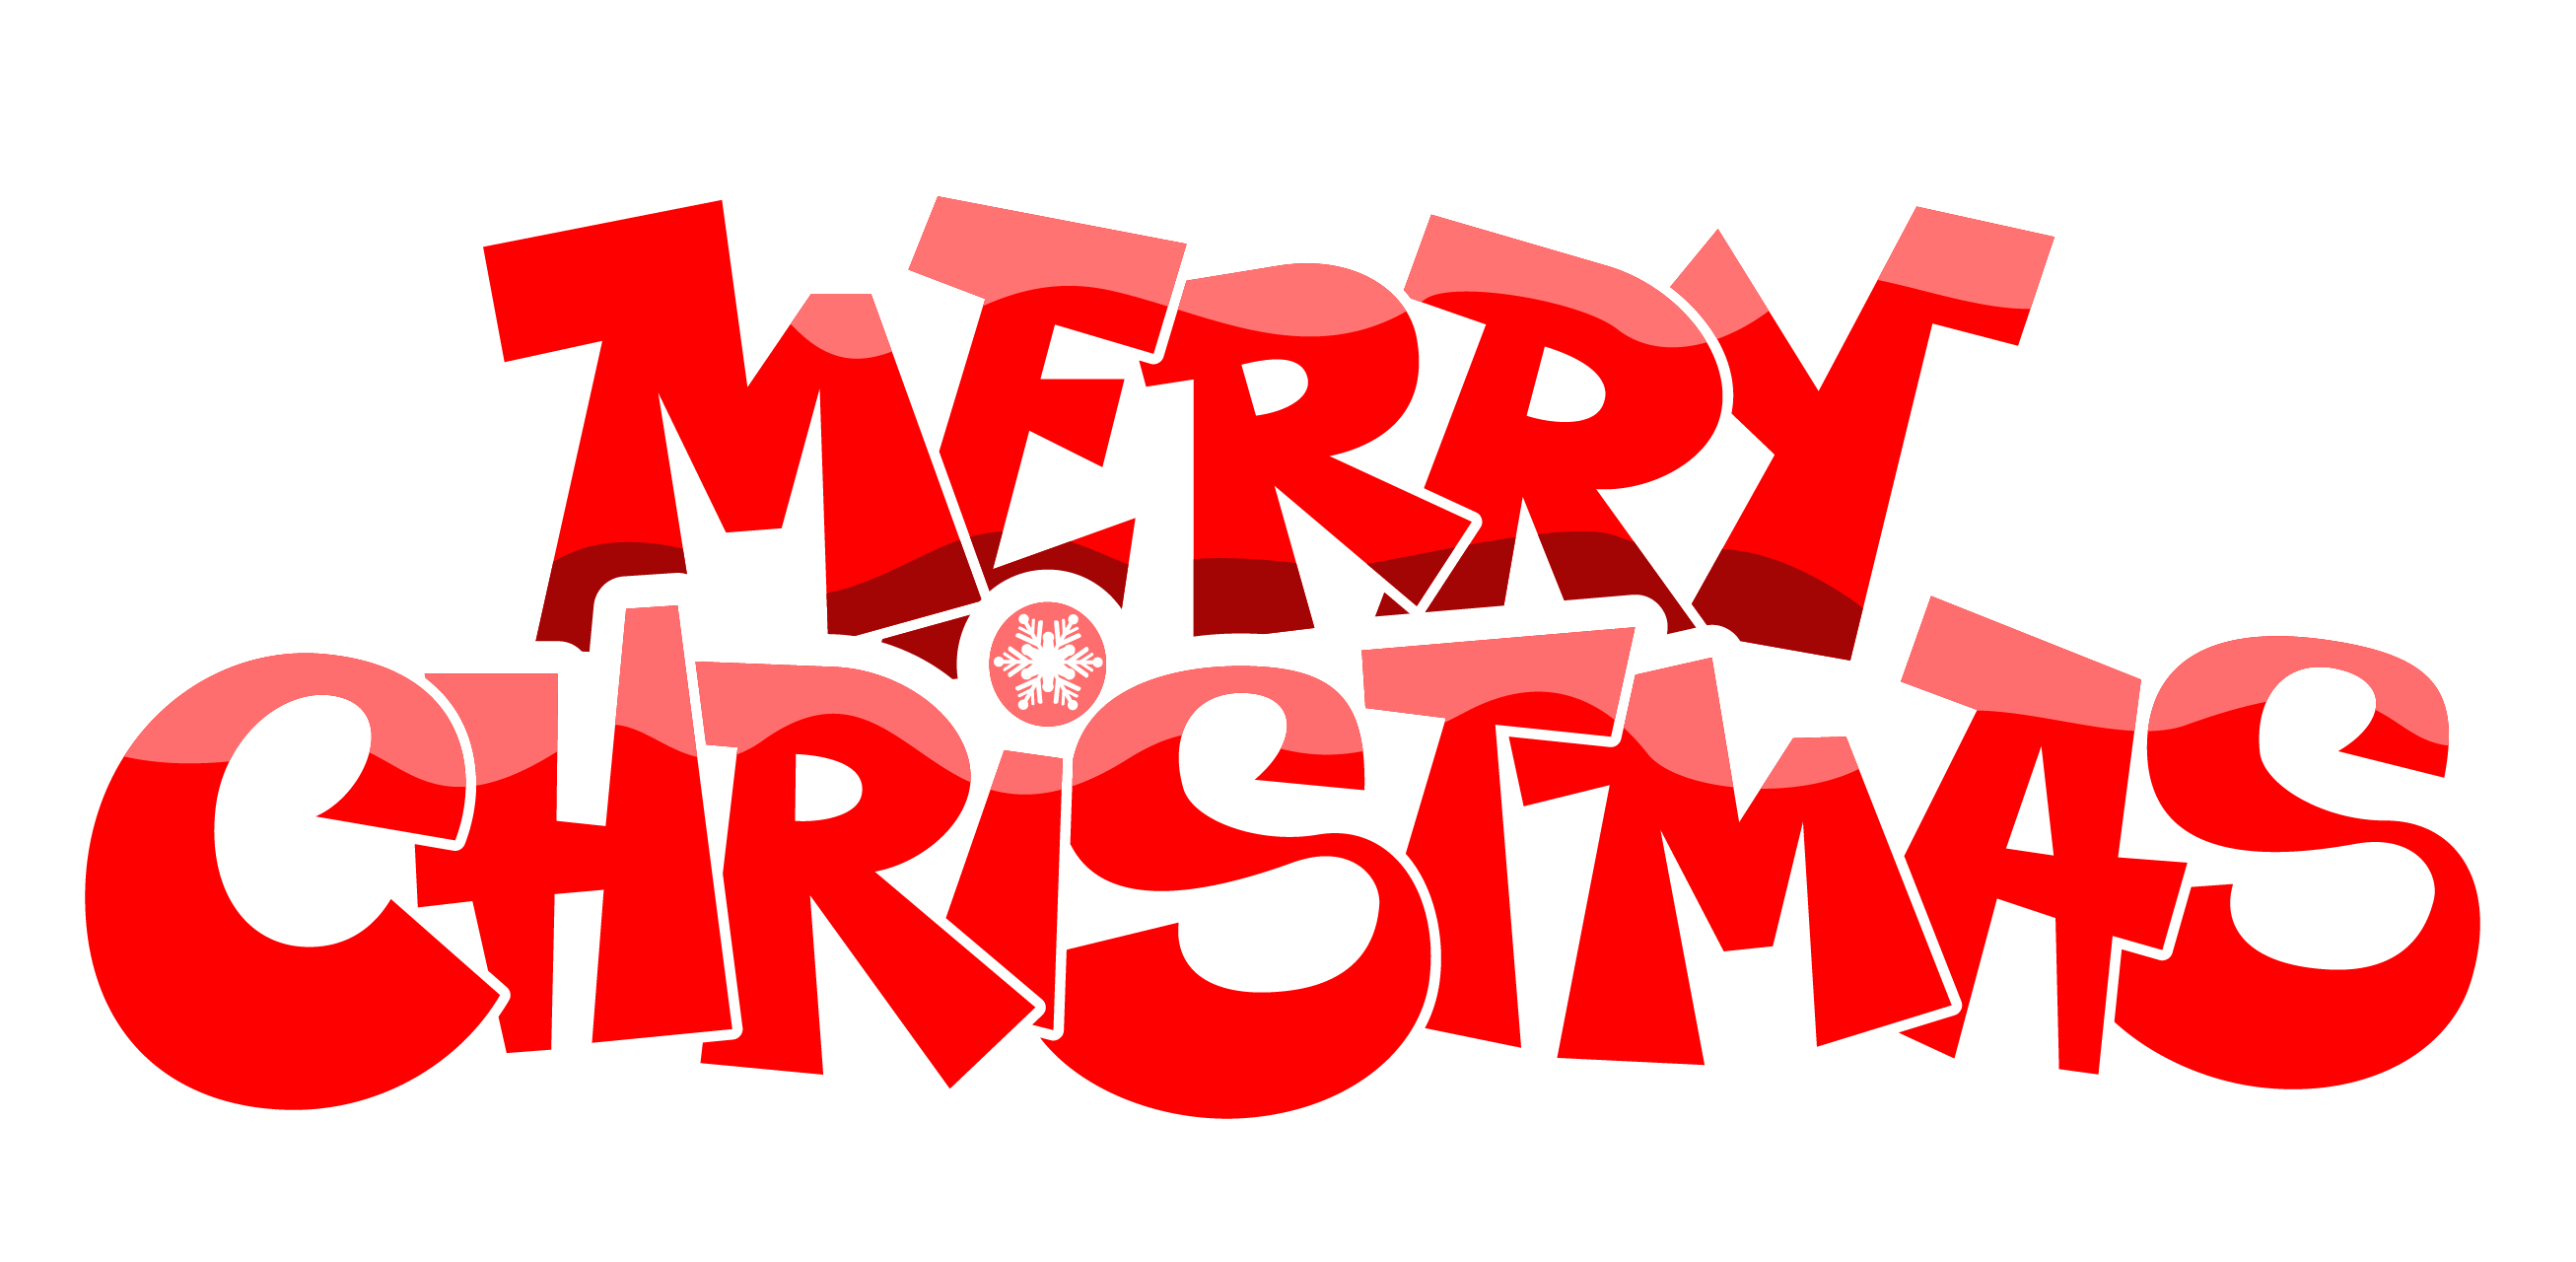 Merry christmas png happy. Text gallery yopriceville high